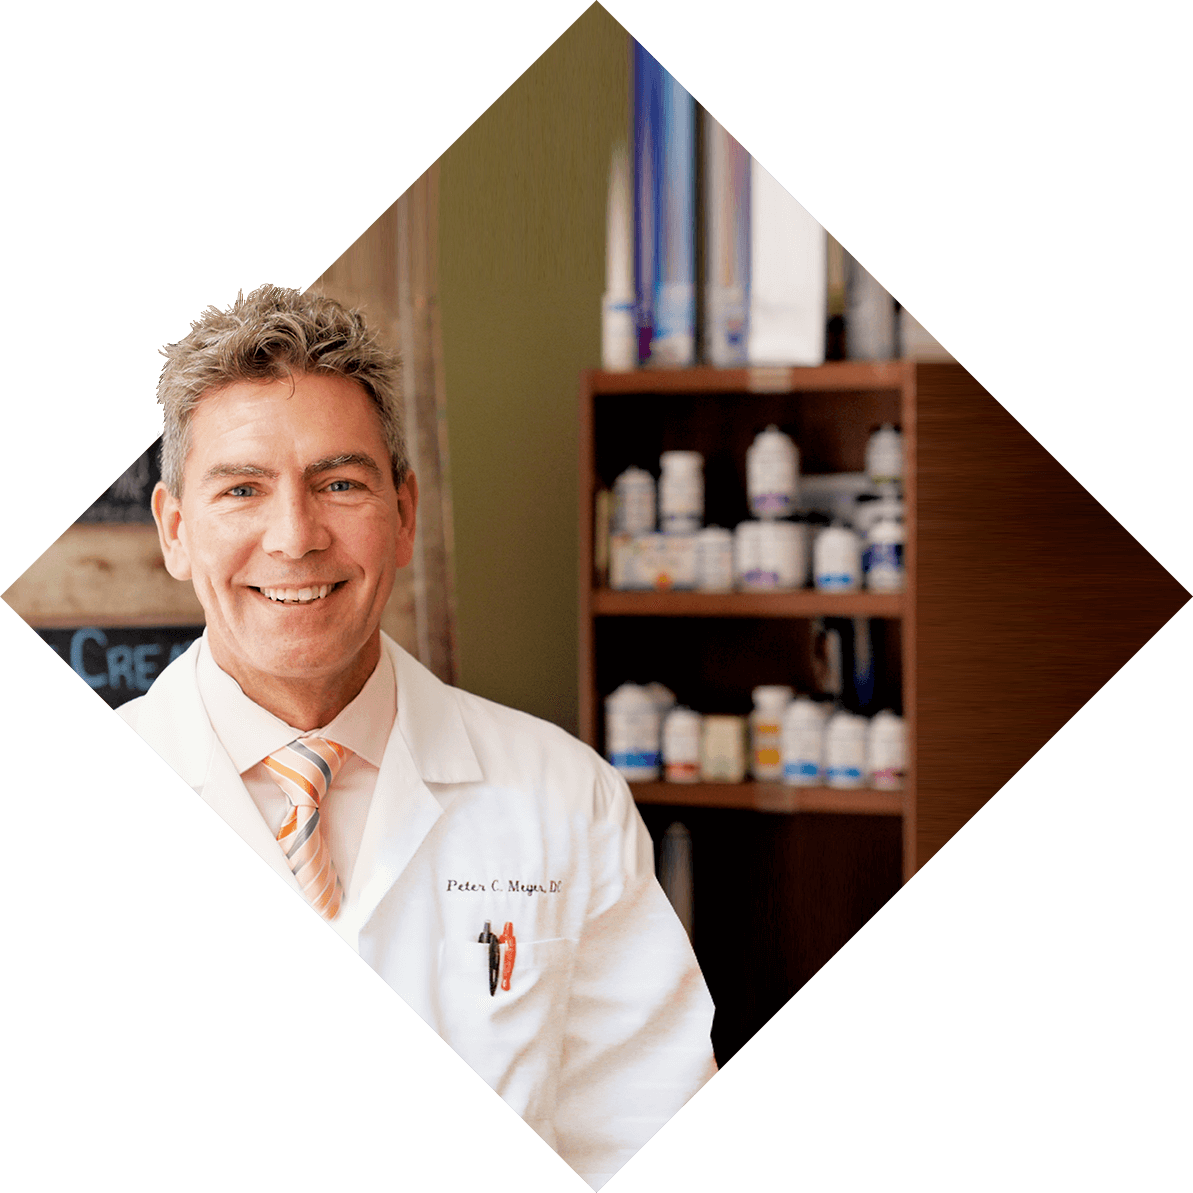 Get to know Dr. Pete